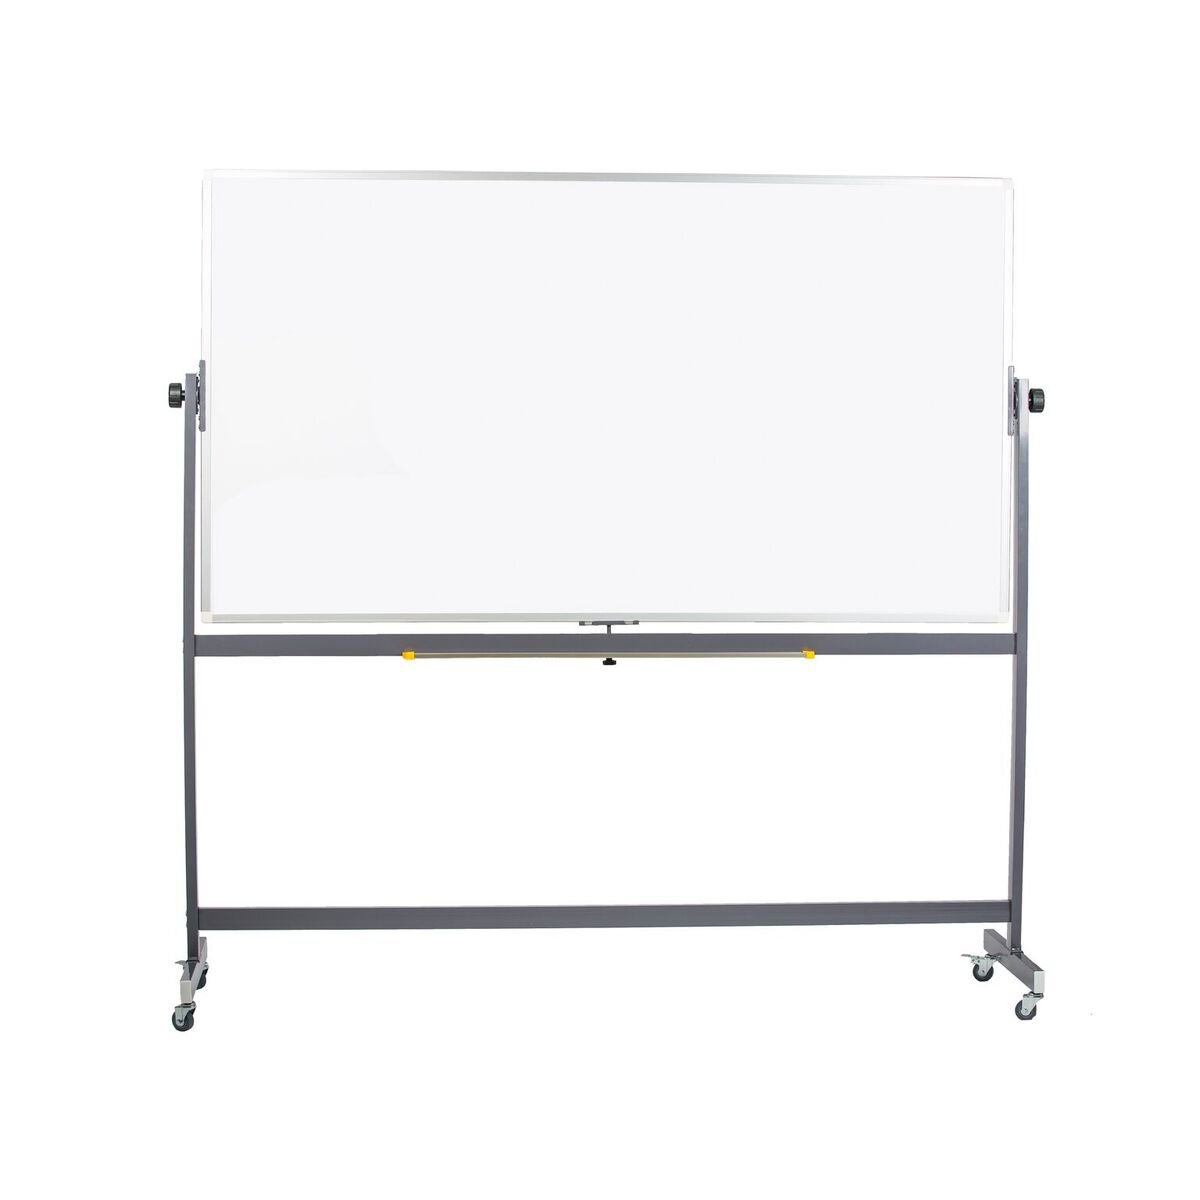 Pearington WB-AP001 Mobile Reversible Magnetic White Dry Erase Board with Aluminum Frame, 72'' W x 40'' H